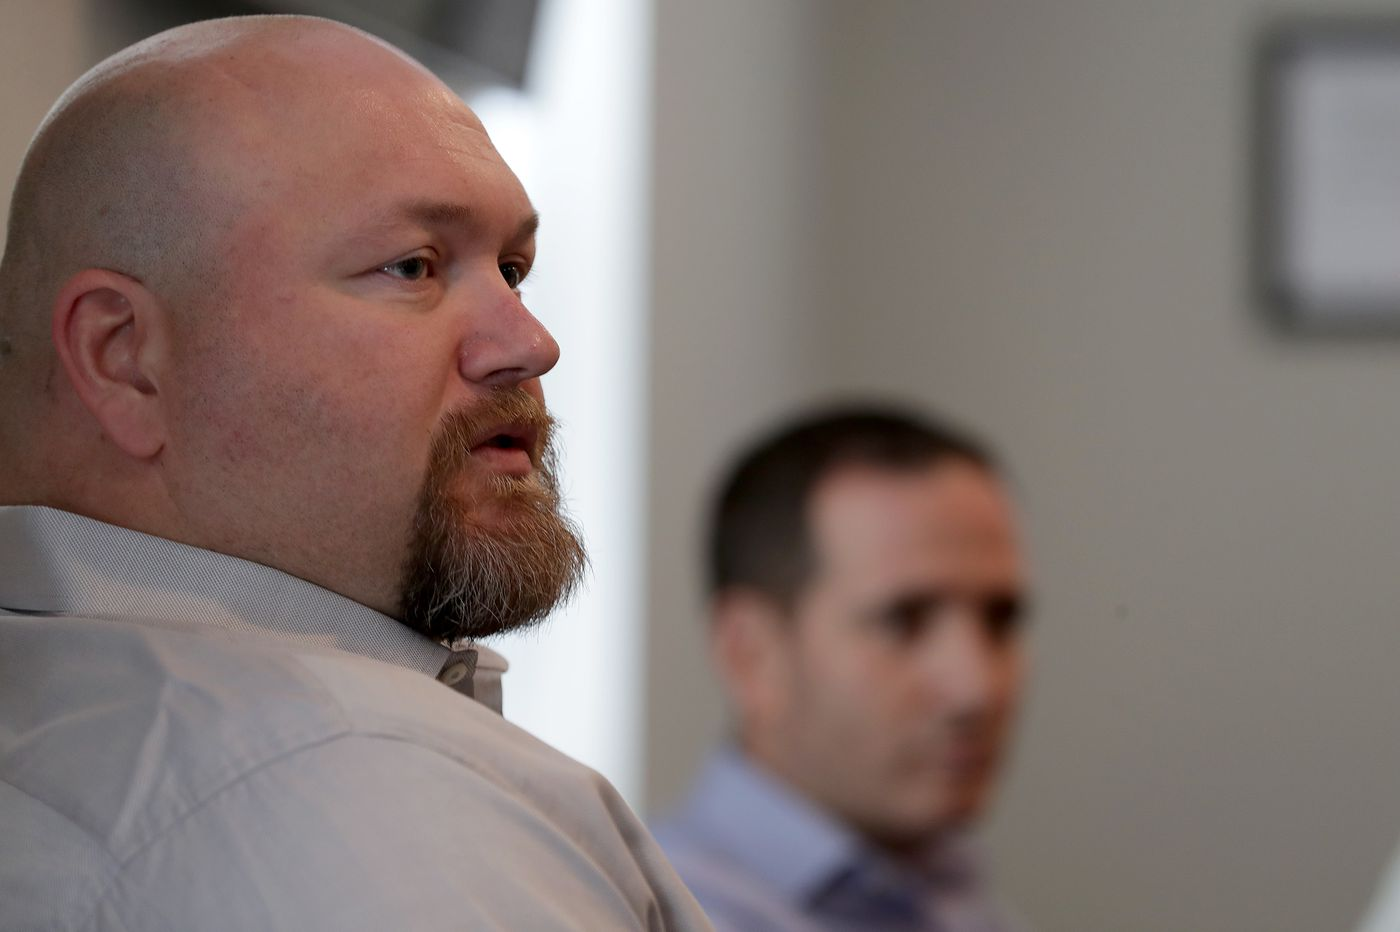 For Eagles player personnel VP Joe Douglas, the next NFL draft is his most important | Jeff McLane